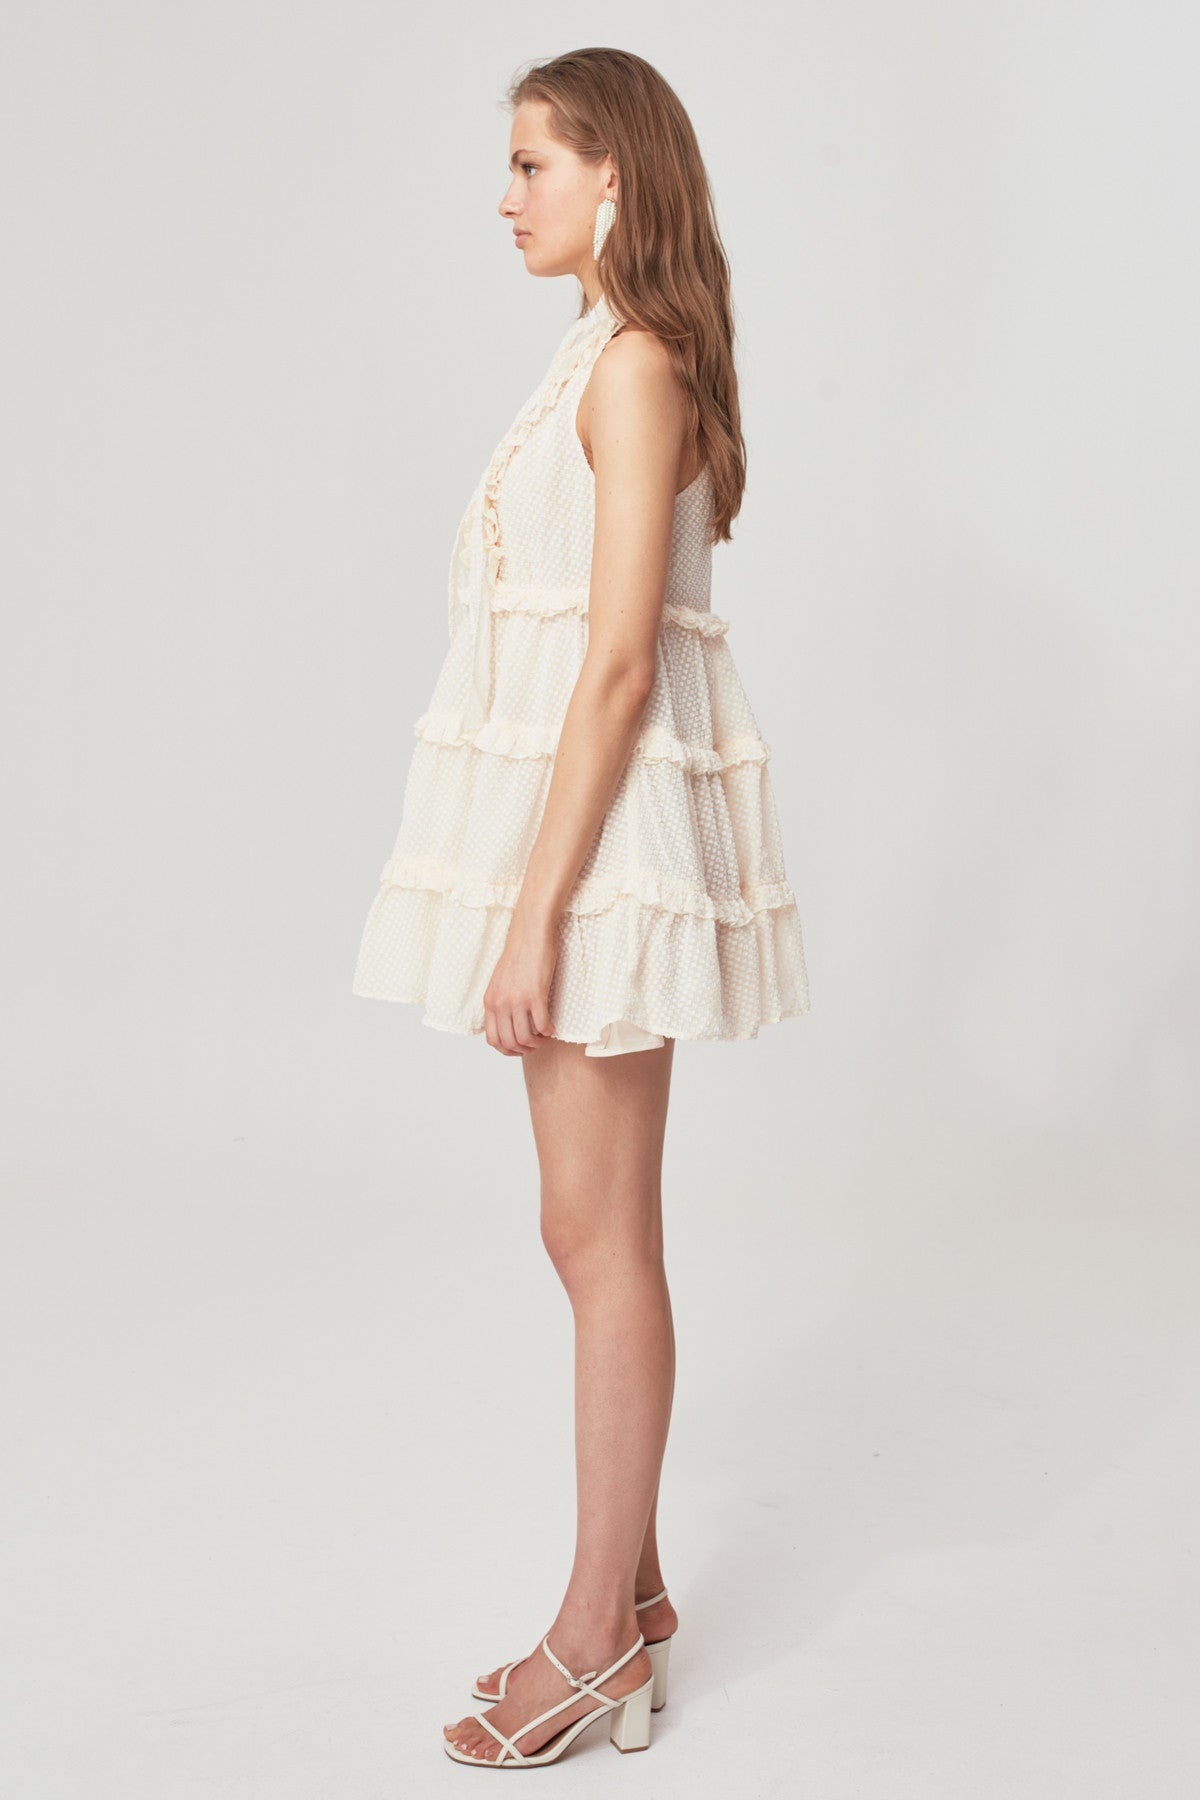 BREAK IN TWO SHORT SLEEVE DRESS cream w ivory